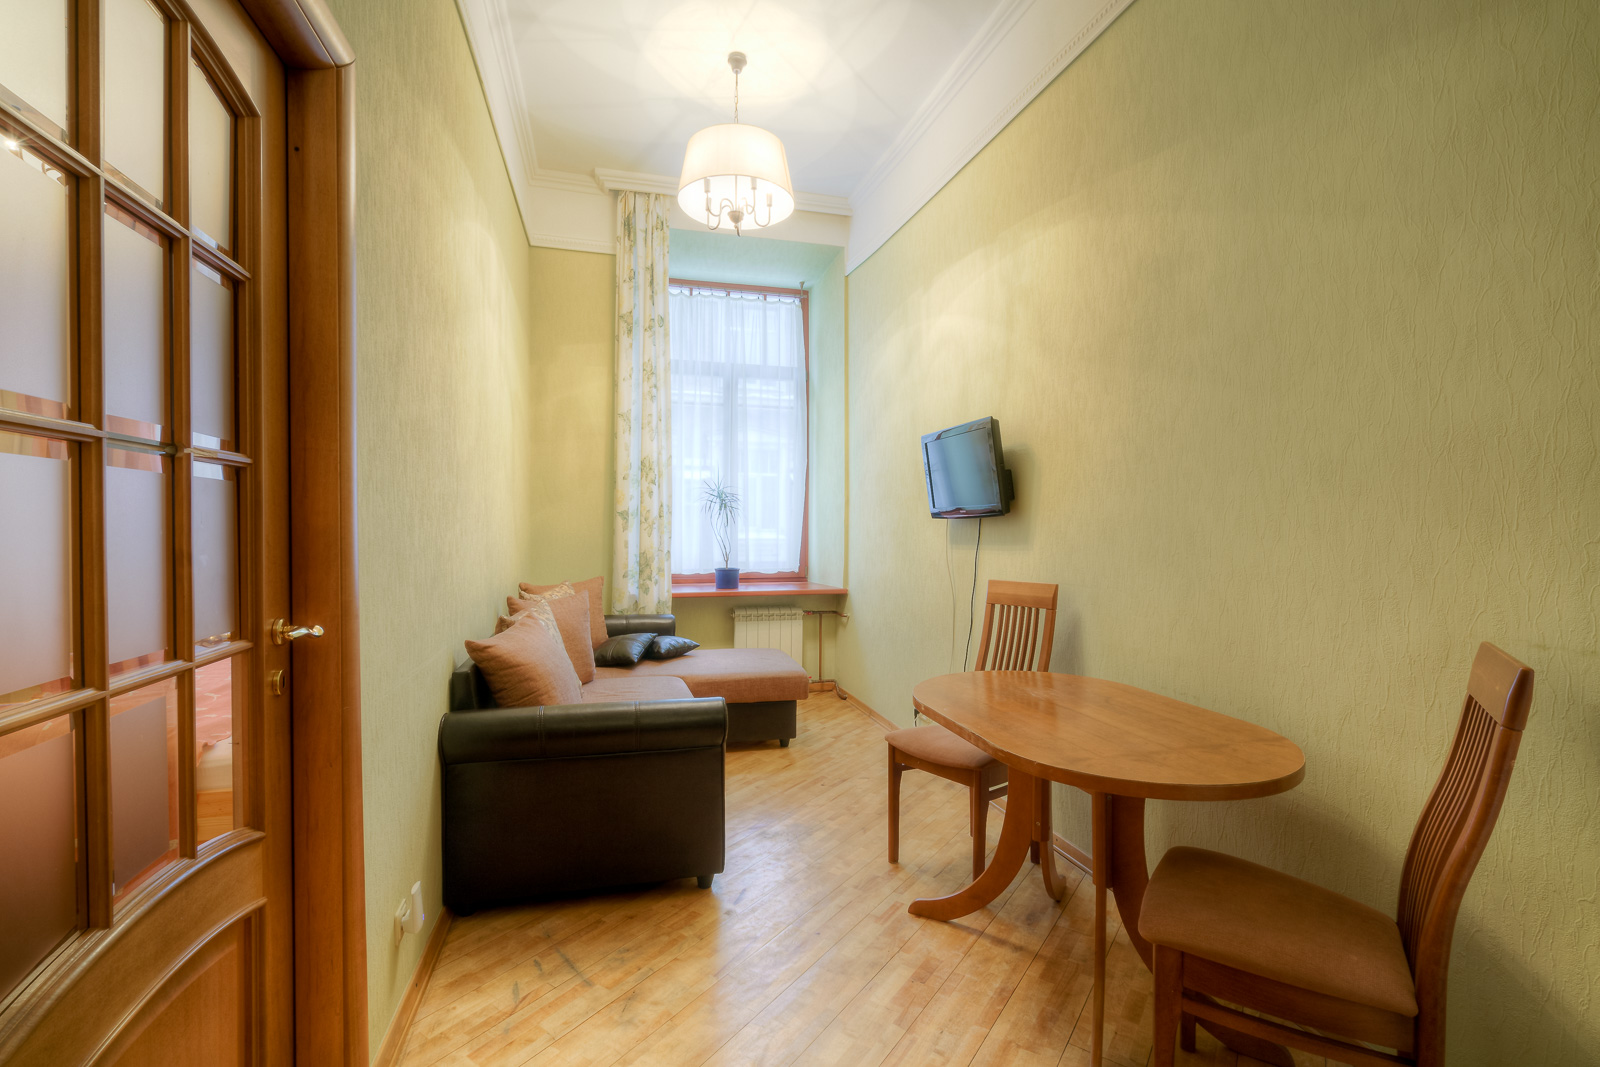 http://city-otel.ru/wp-content/uploads/2018/03/hotel_sity_apartment_2.jpg